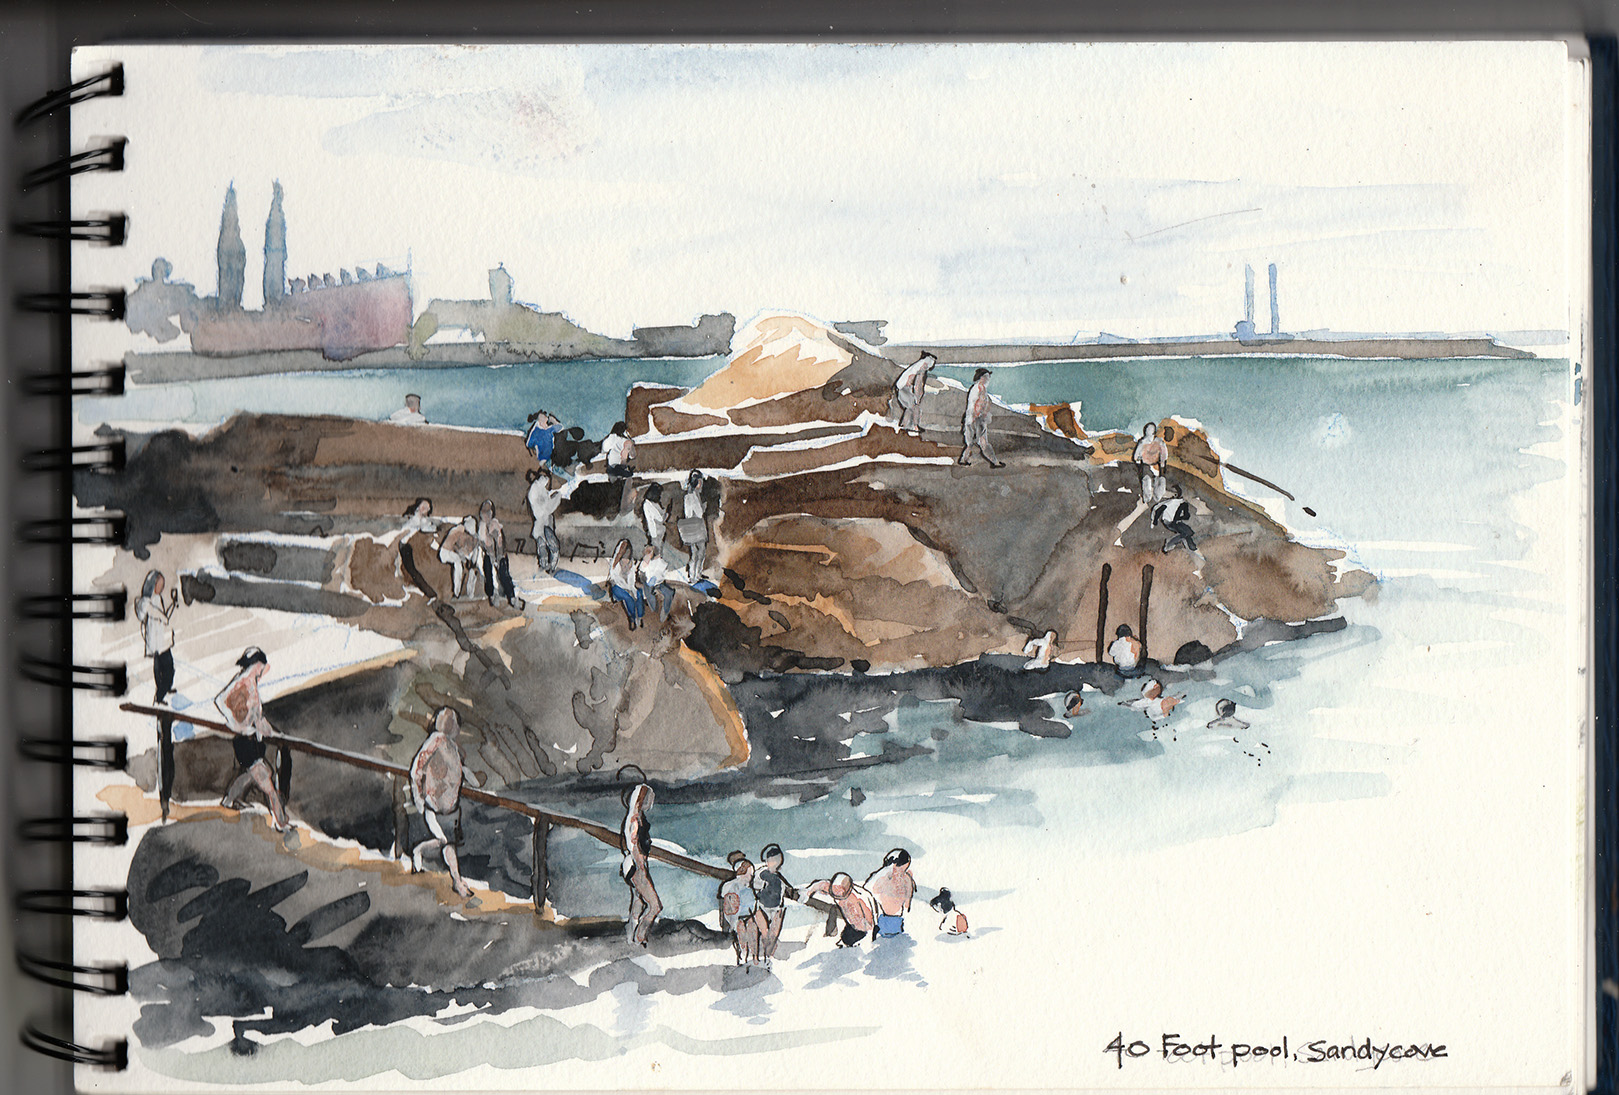 Sandycove's legendary swimming hole at 40 Foot Pool on a beautiful sunny July afternoon. Sketched in watercolour after a quick dip. Dun Loaghaire and Dublin in the background.